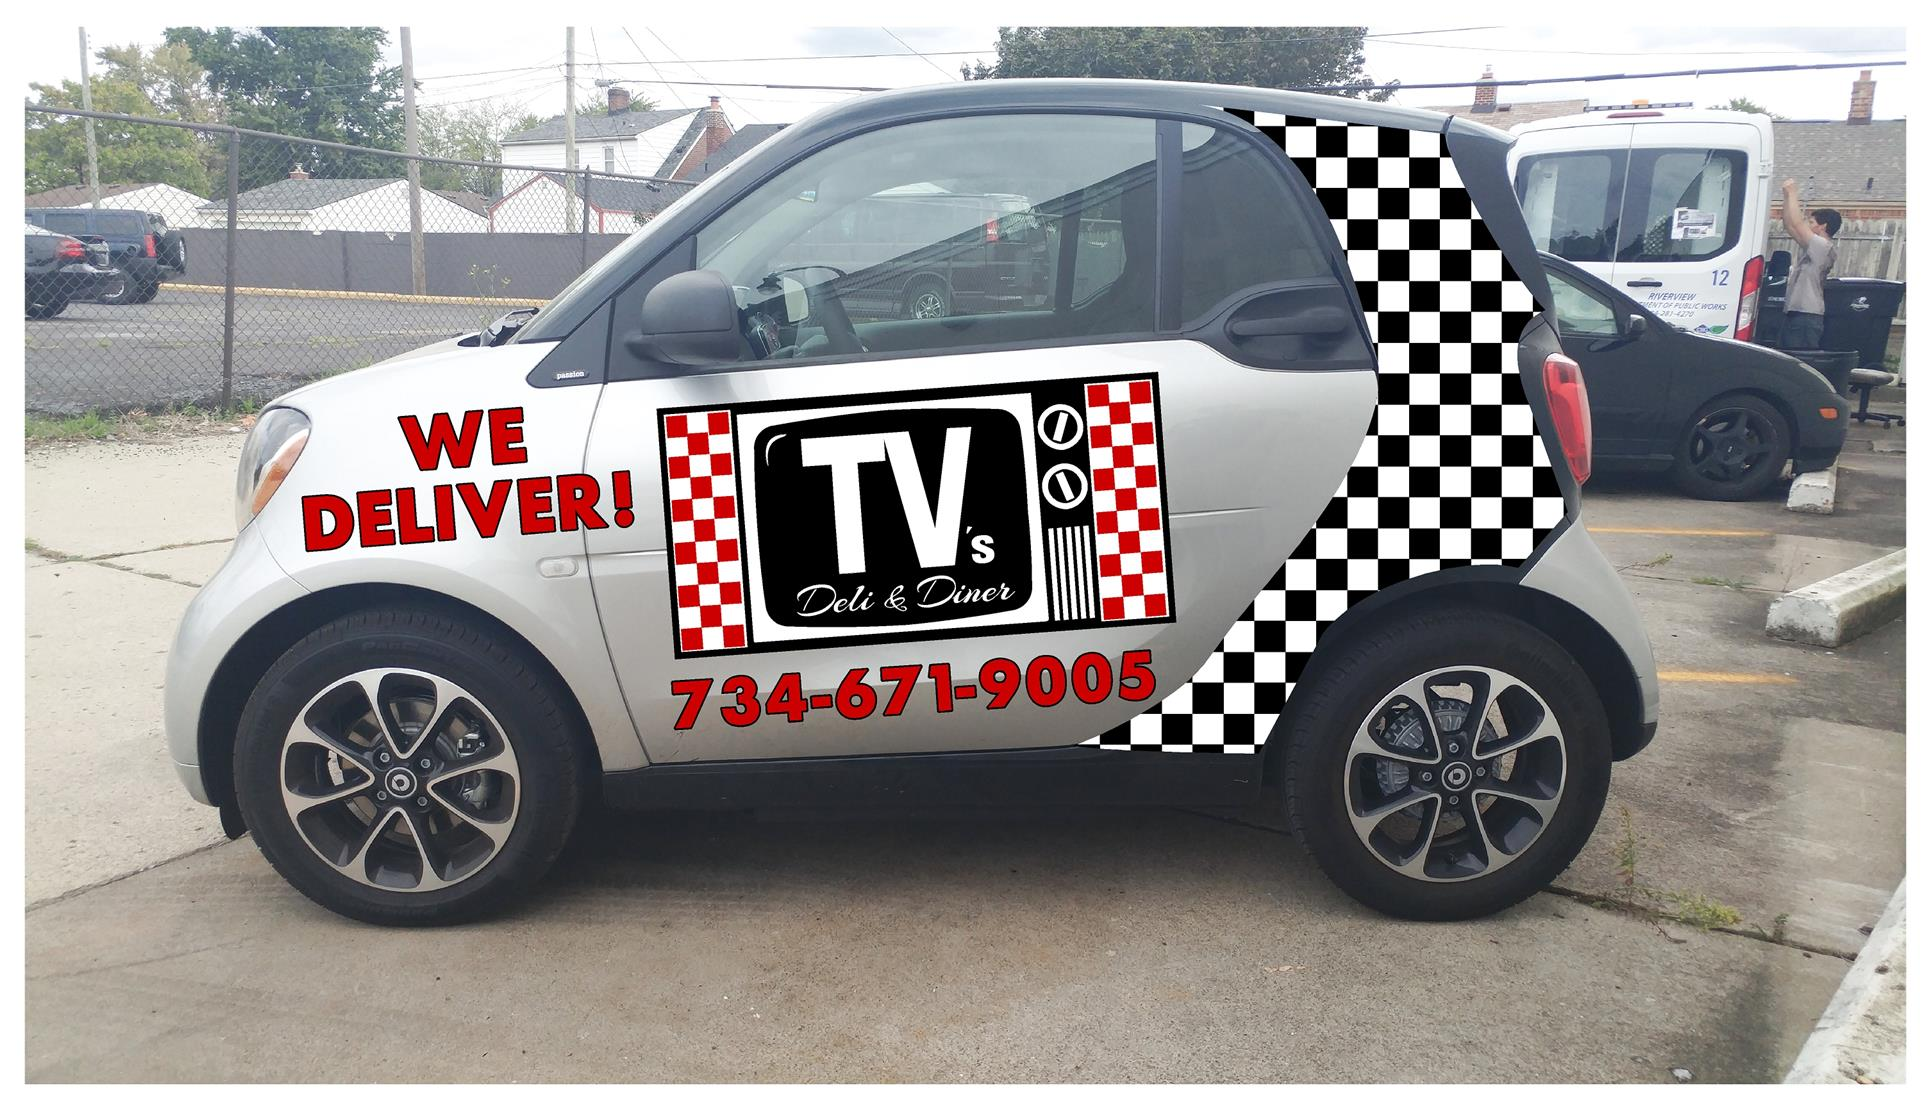 a car with a tv logo on it